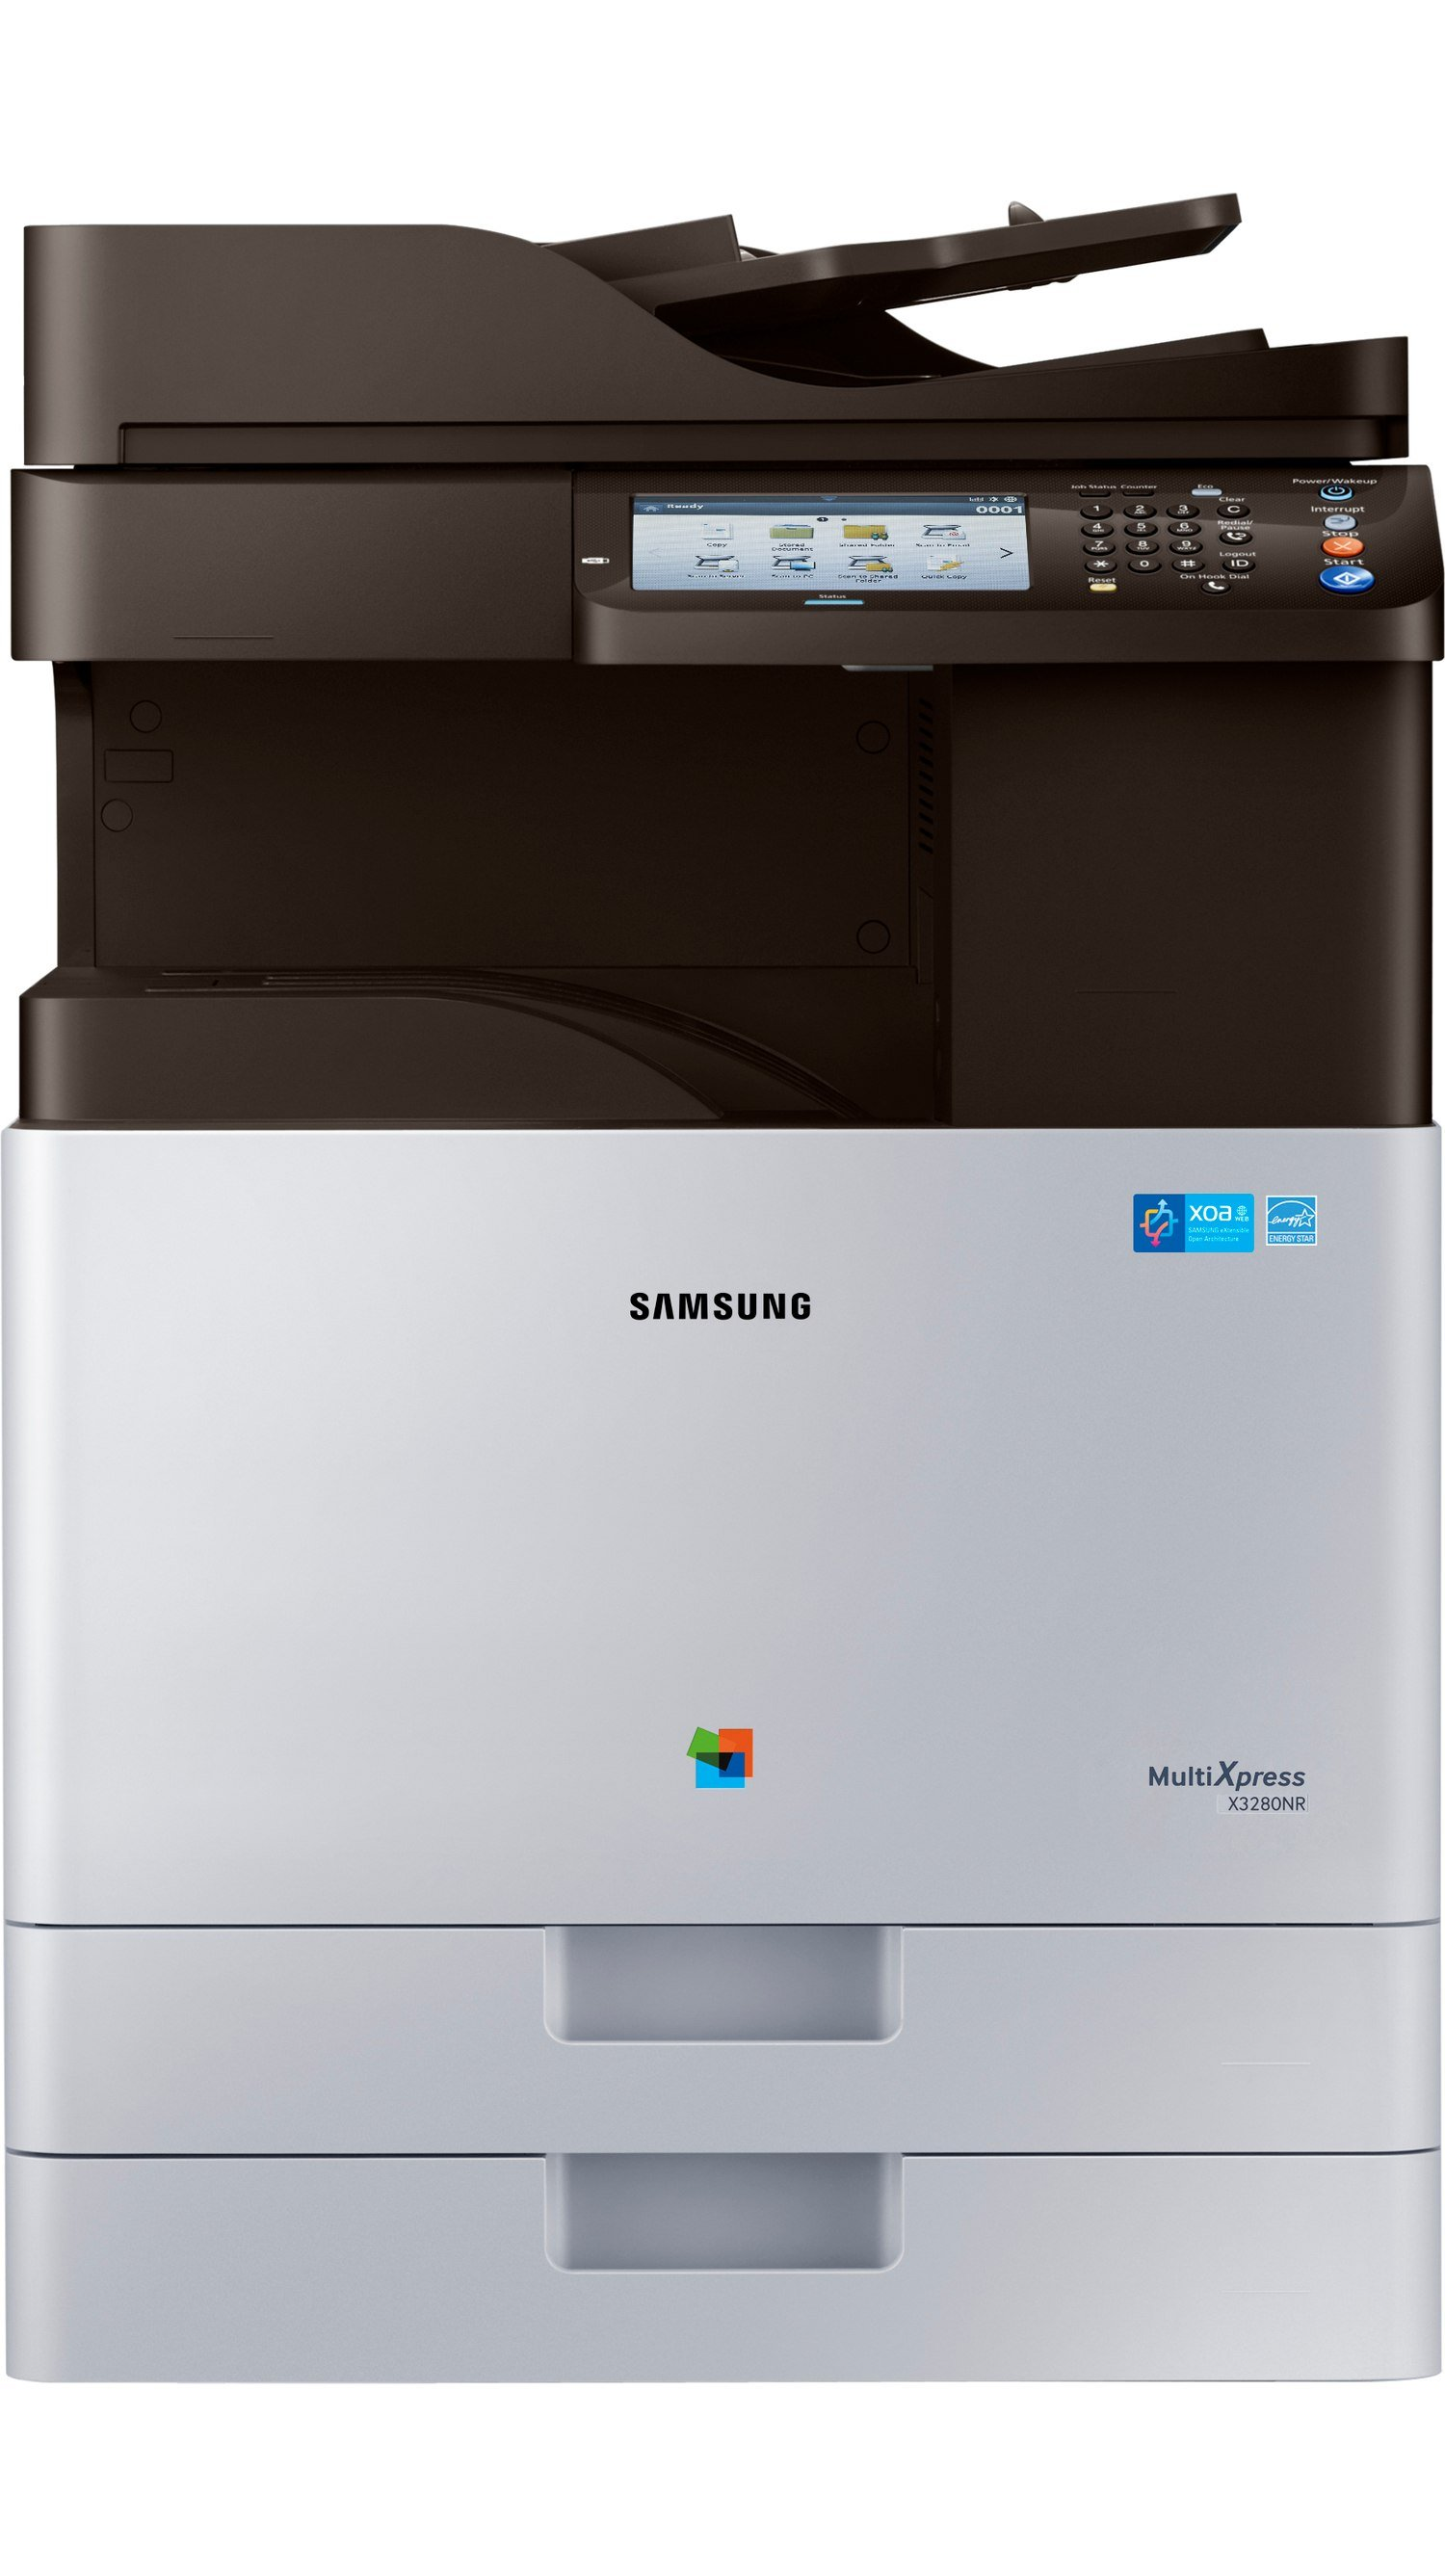 Samsung MultiXpress SL-X3280NR Toner Cartridges